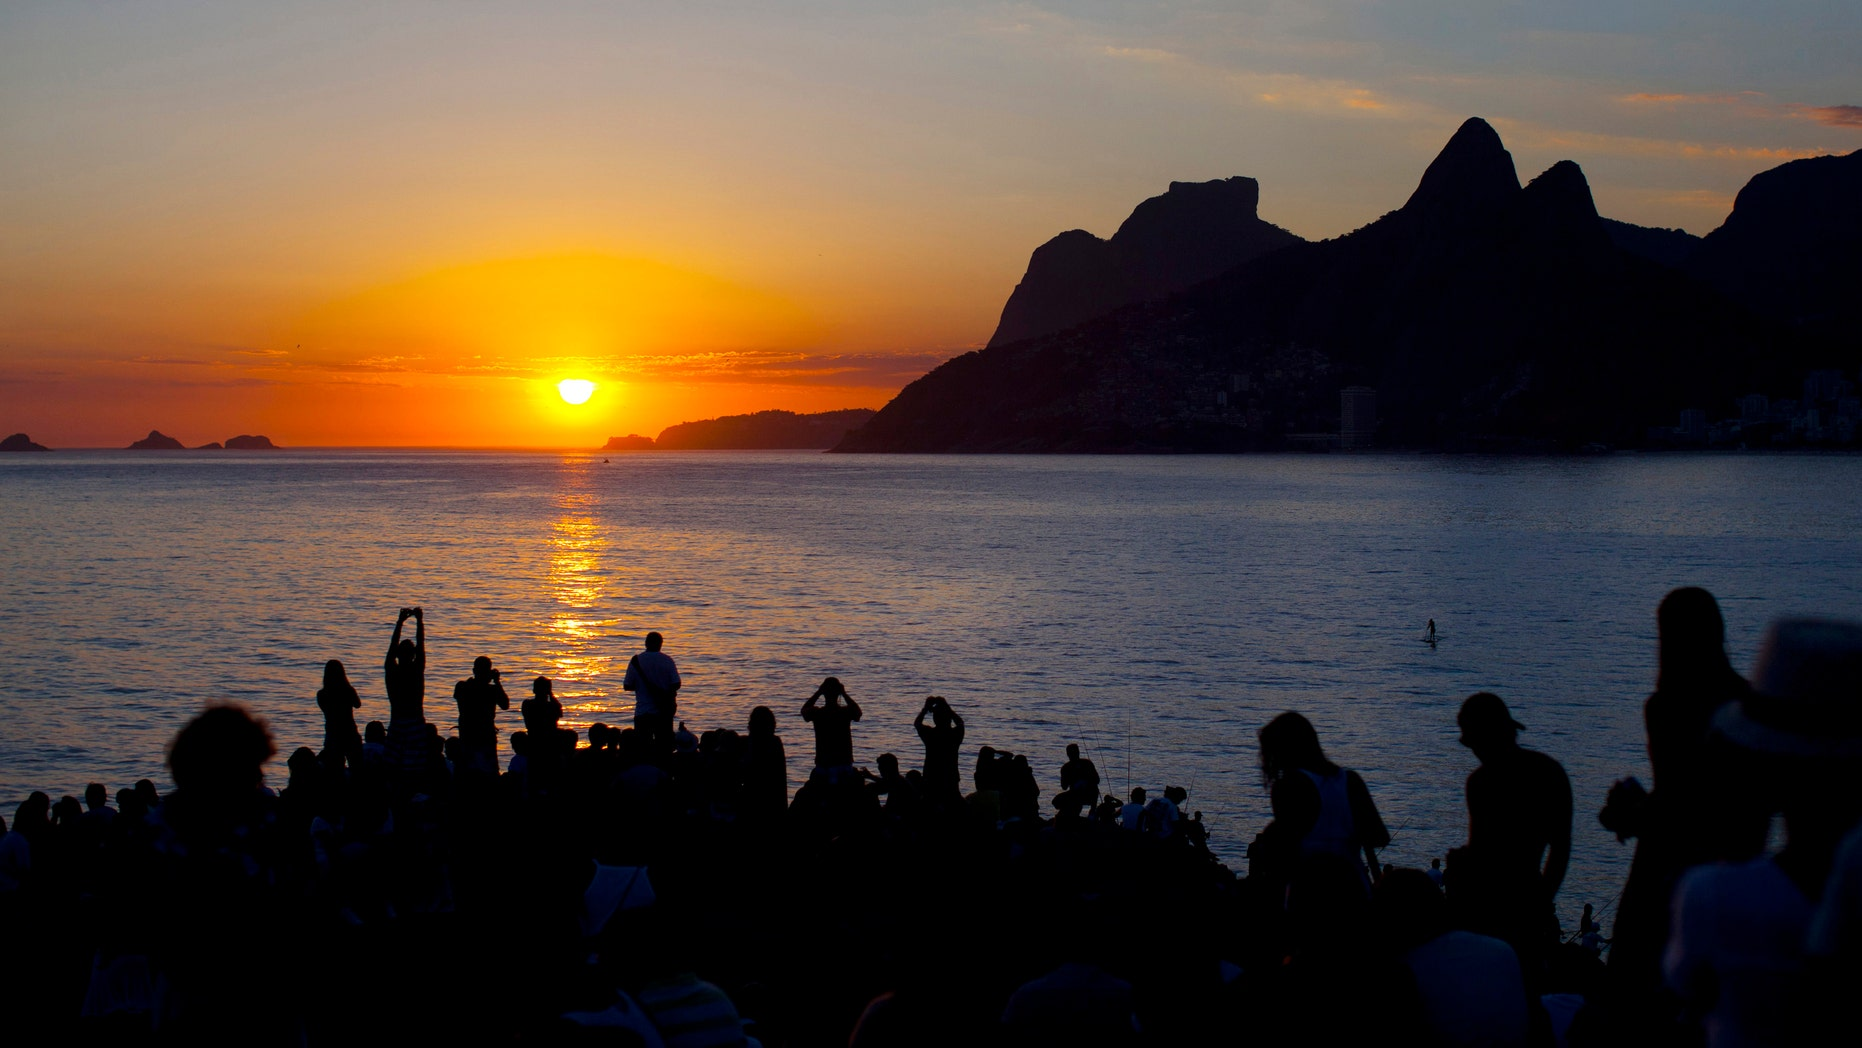 In this photo taken on Feb. 6, 2012, people watch the sun set and take pictures from Arpoador beach in Rio de Janeiro, Brazil. Rio is a city of contrasts, where vastly different worlds rub shoulders, and the unexpected lies lurking around every corner.  (AP Photo/Felipe Dana)